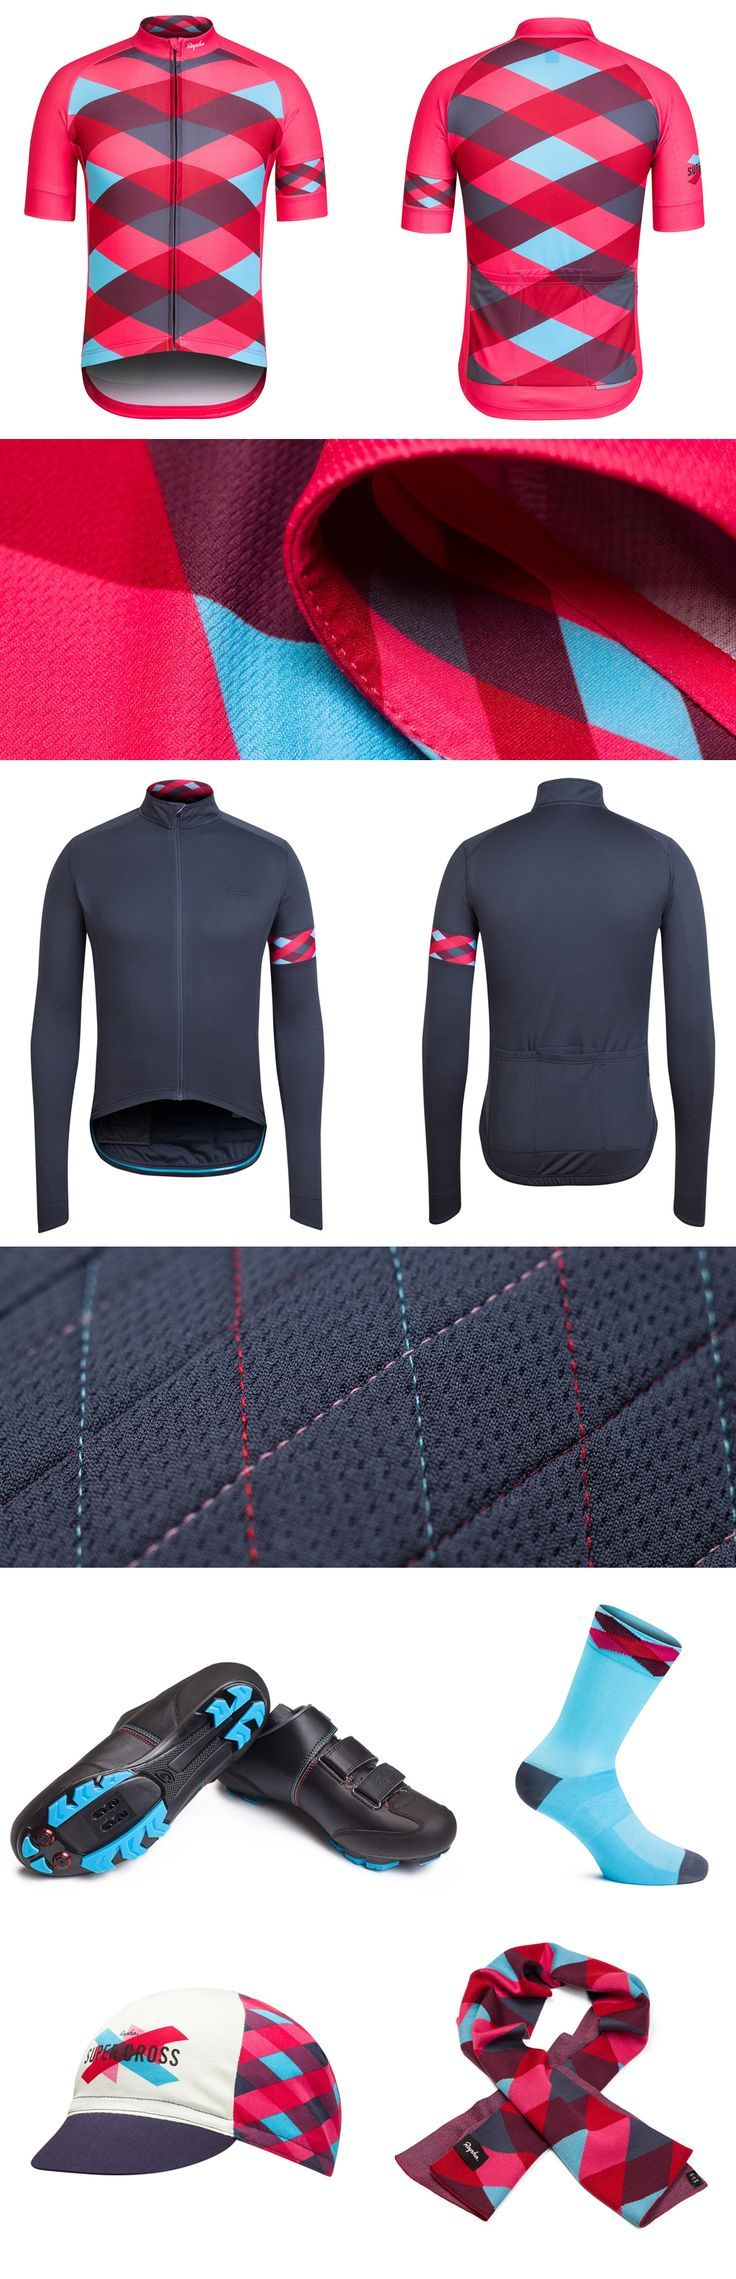 Rapha SuperCross Collection http://www.rapha.cc/ca/en/shop/cyclocross/category/cyclocross